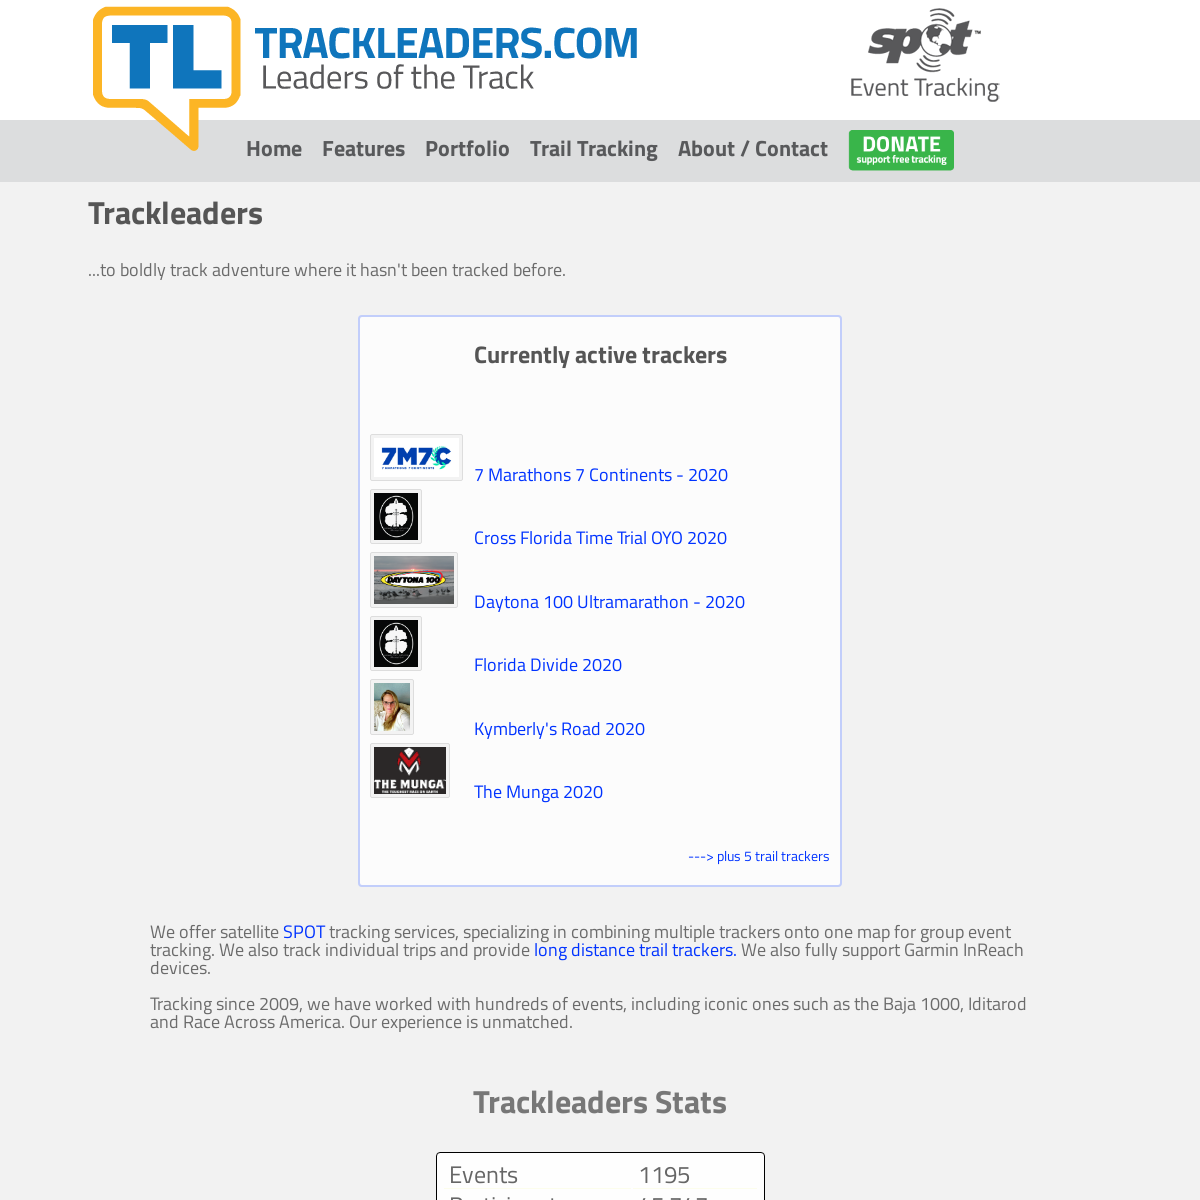 trackleaders.com - leaders of the track